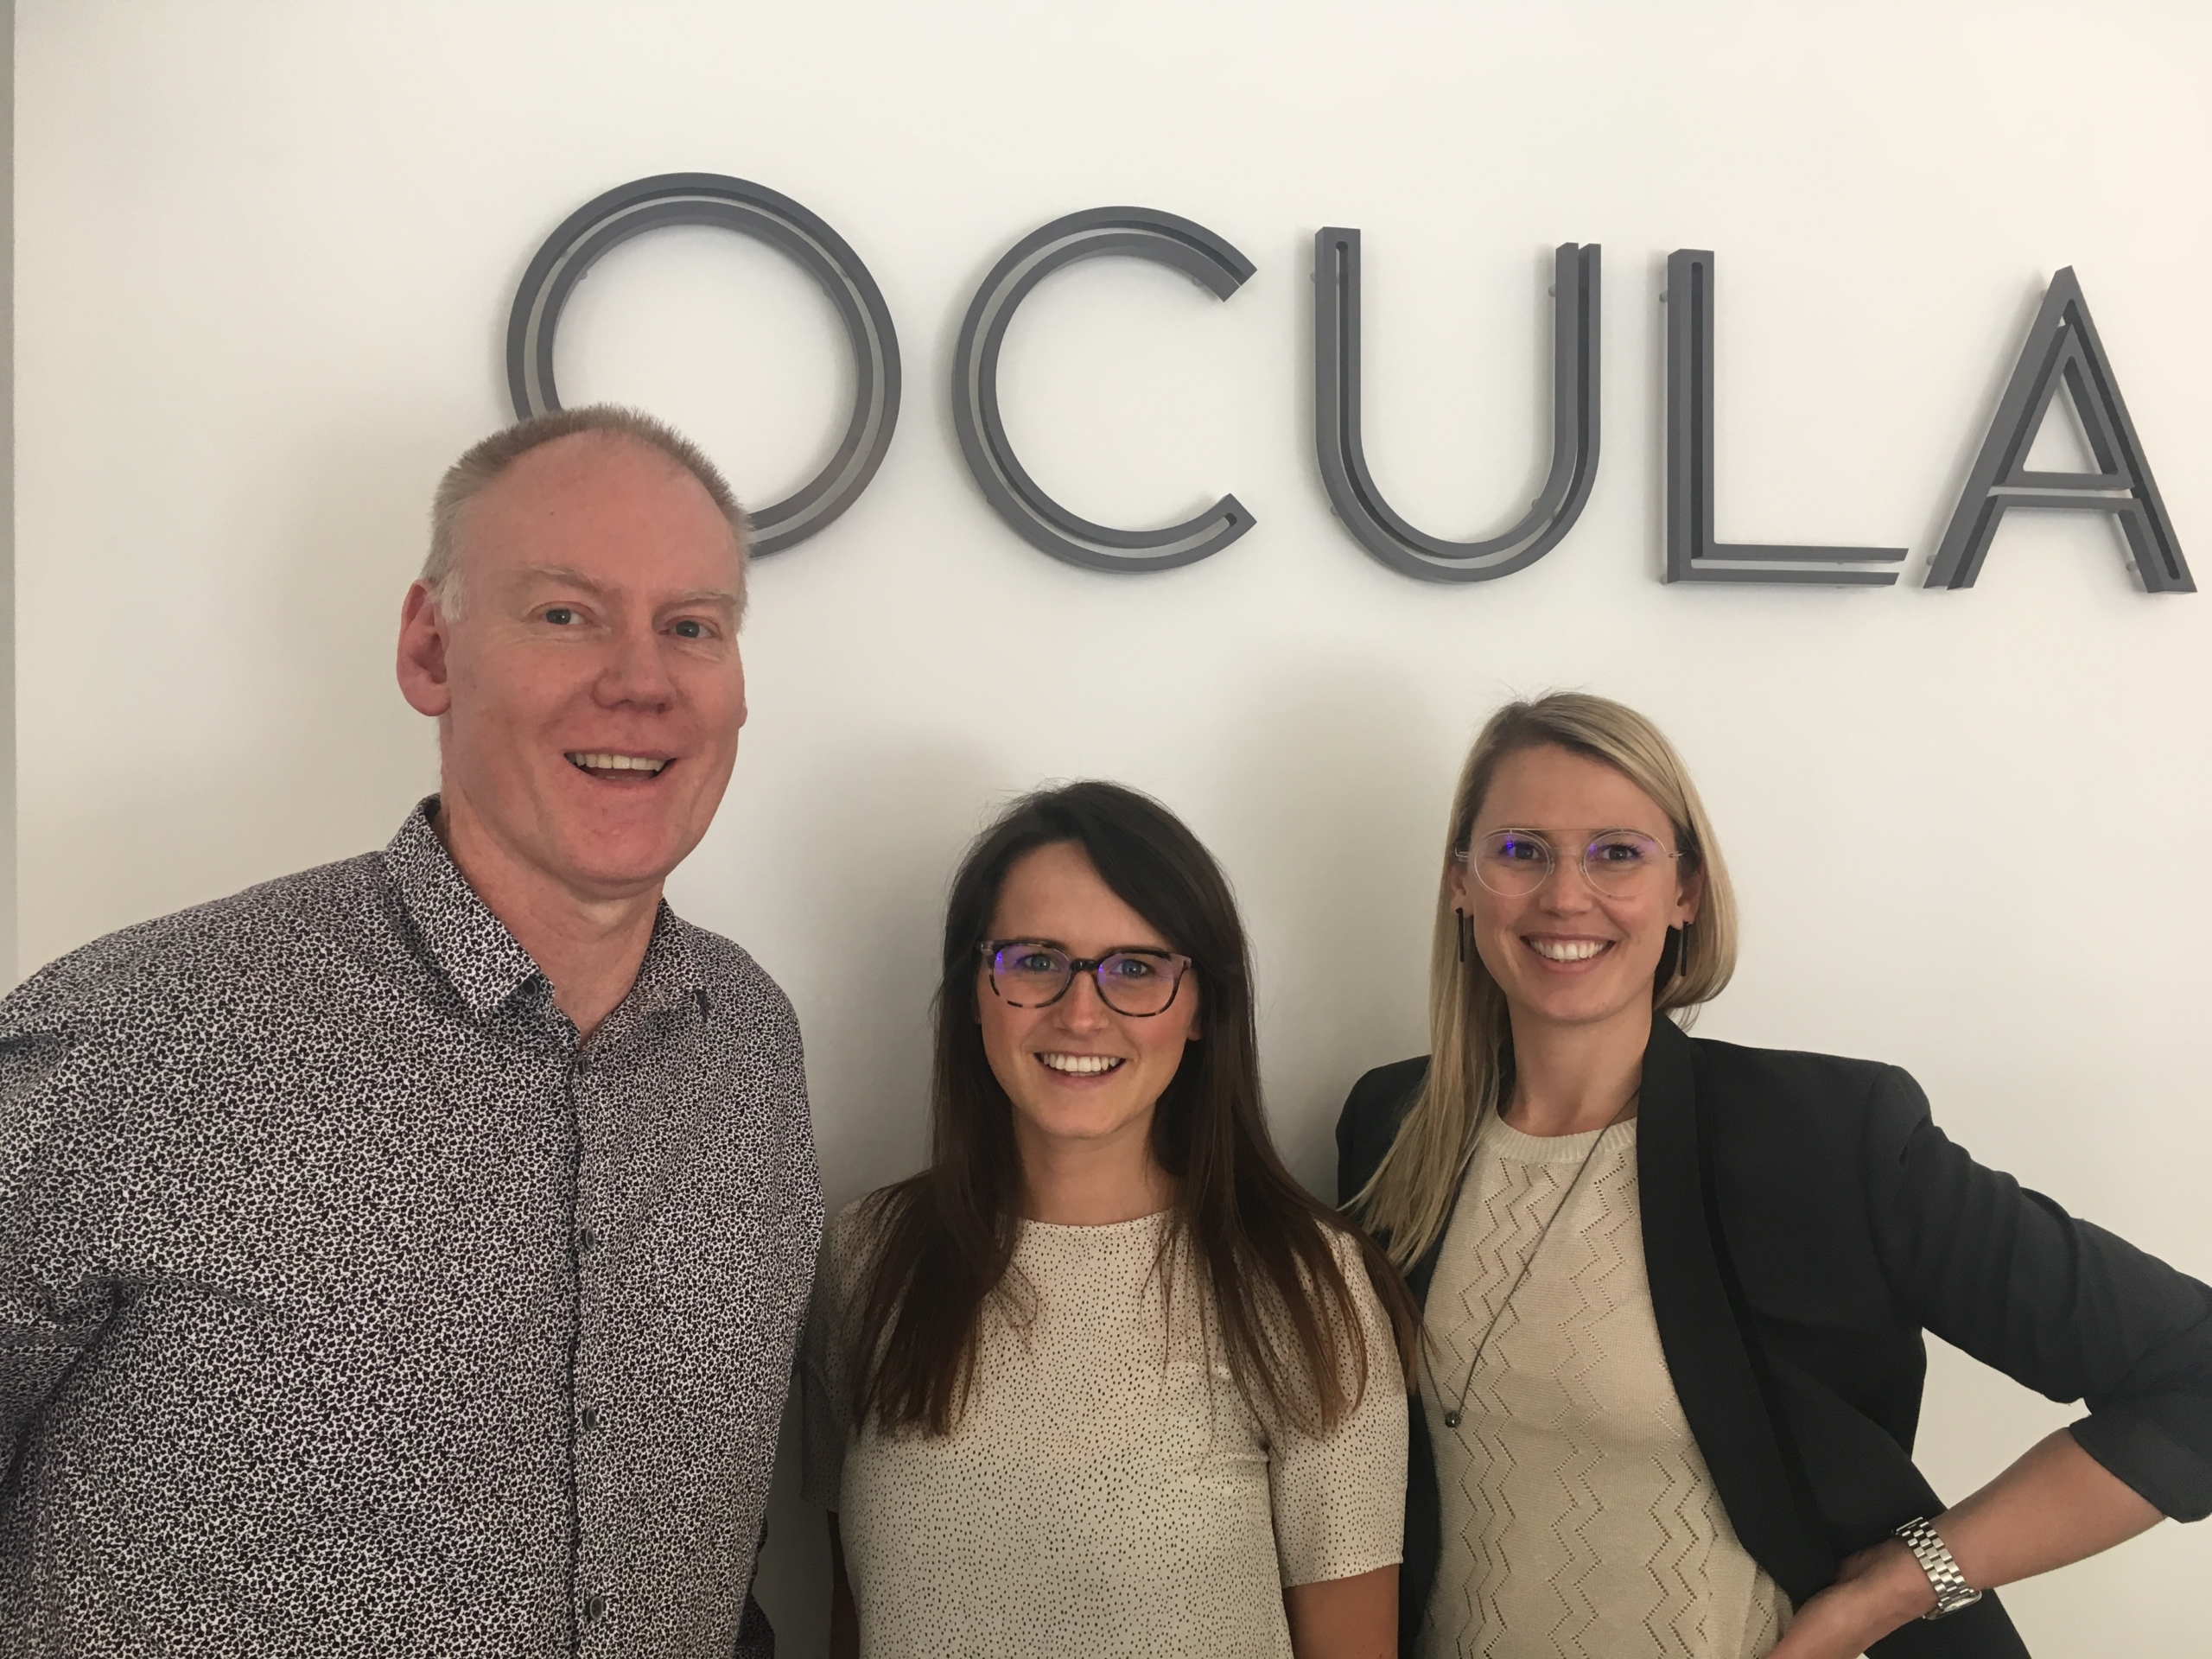 Local optometrist launches innovative eye service at OCULA